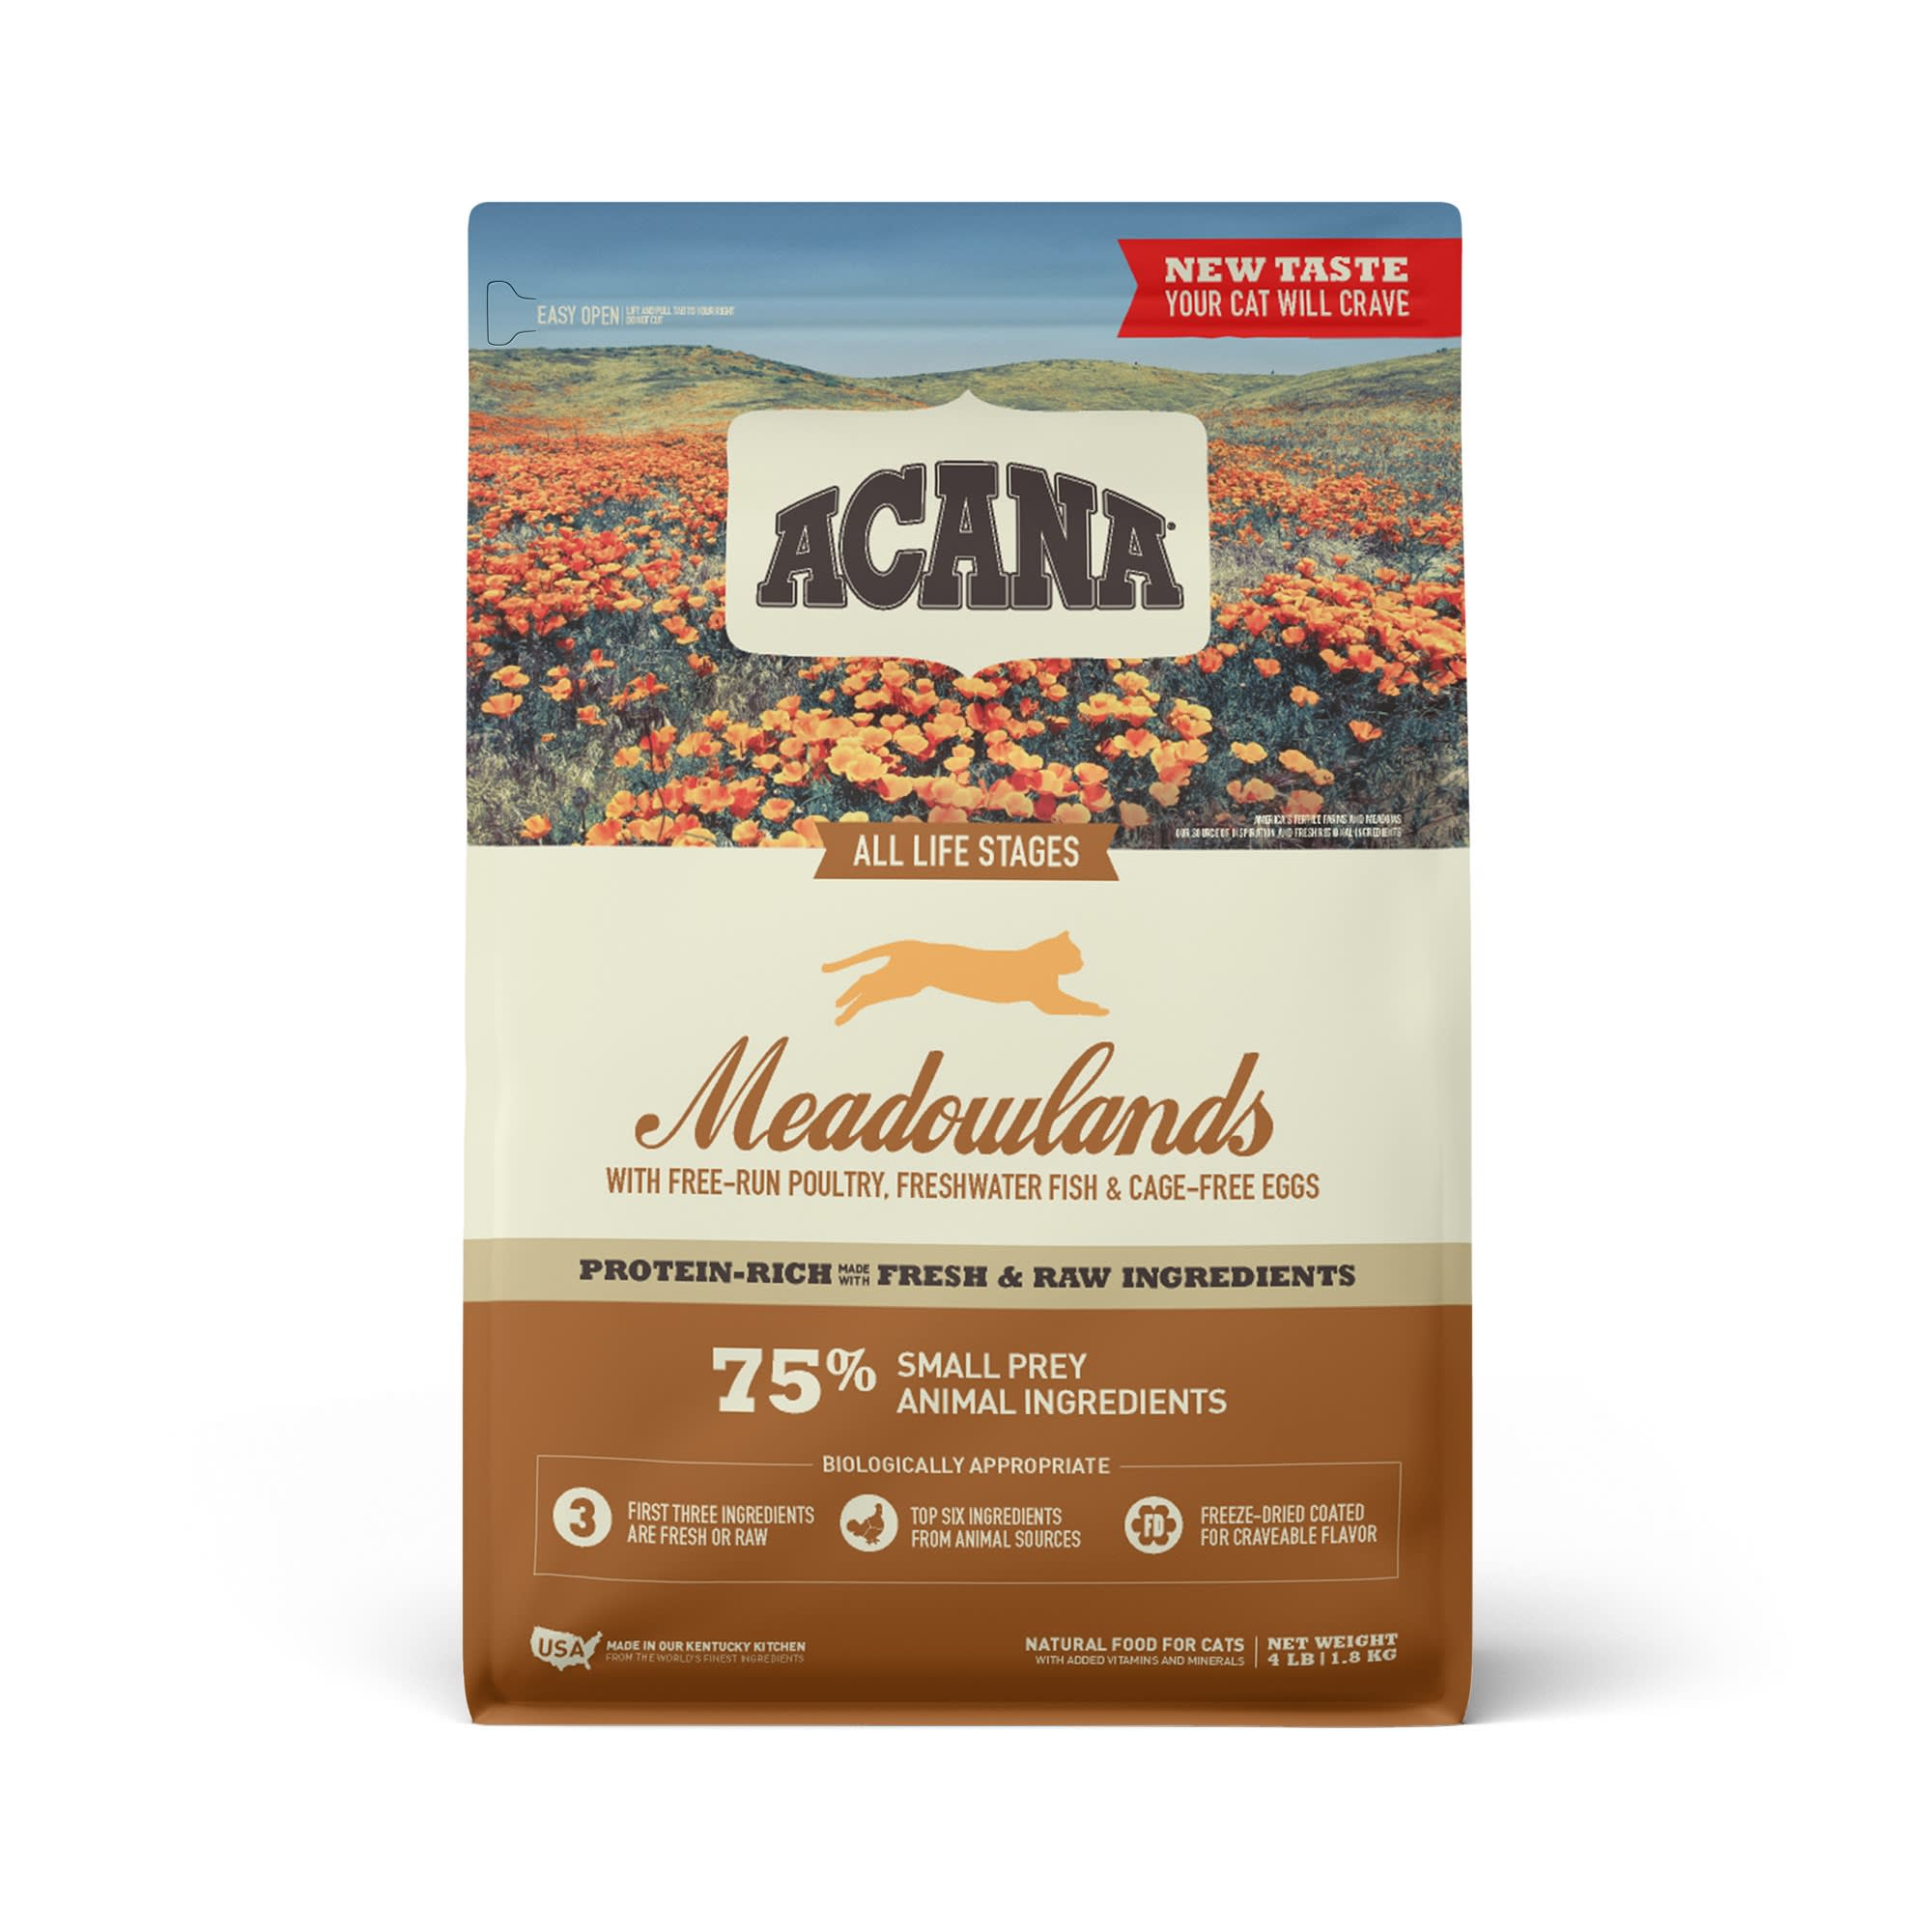 ACANA Grain-Free Meadowlands Chicken Turkey Fish and Cage-Free Eggs Dry Cat Food, 4 lbs.